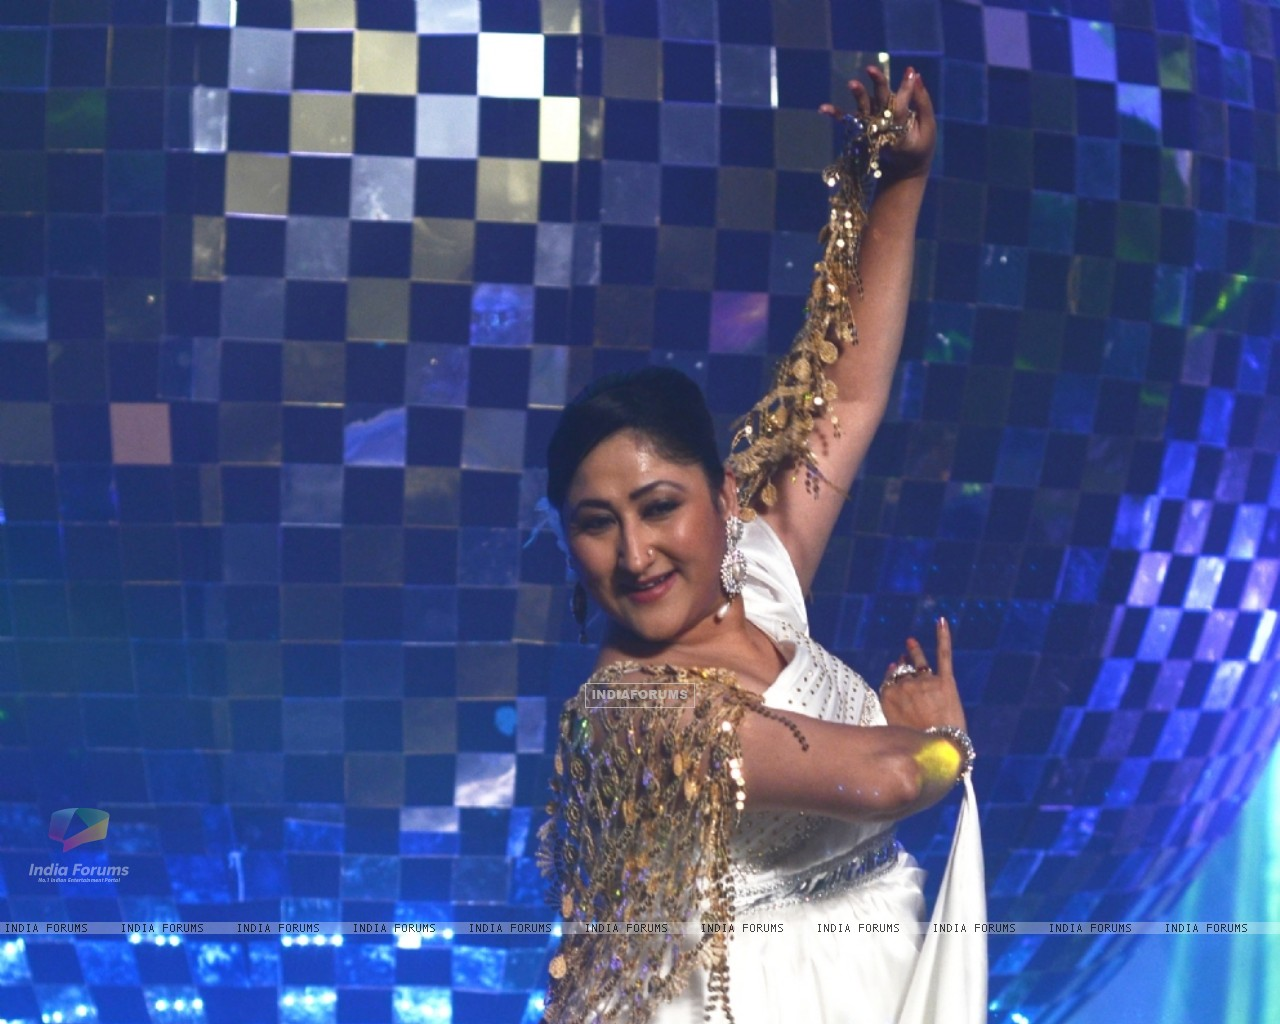 Jayati Bhatia at Jhalak Dikhhla Jaa 5 - Dancing with the stars (200679) size:1280x1024